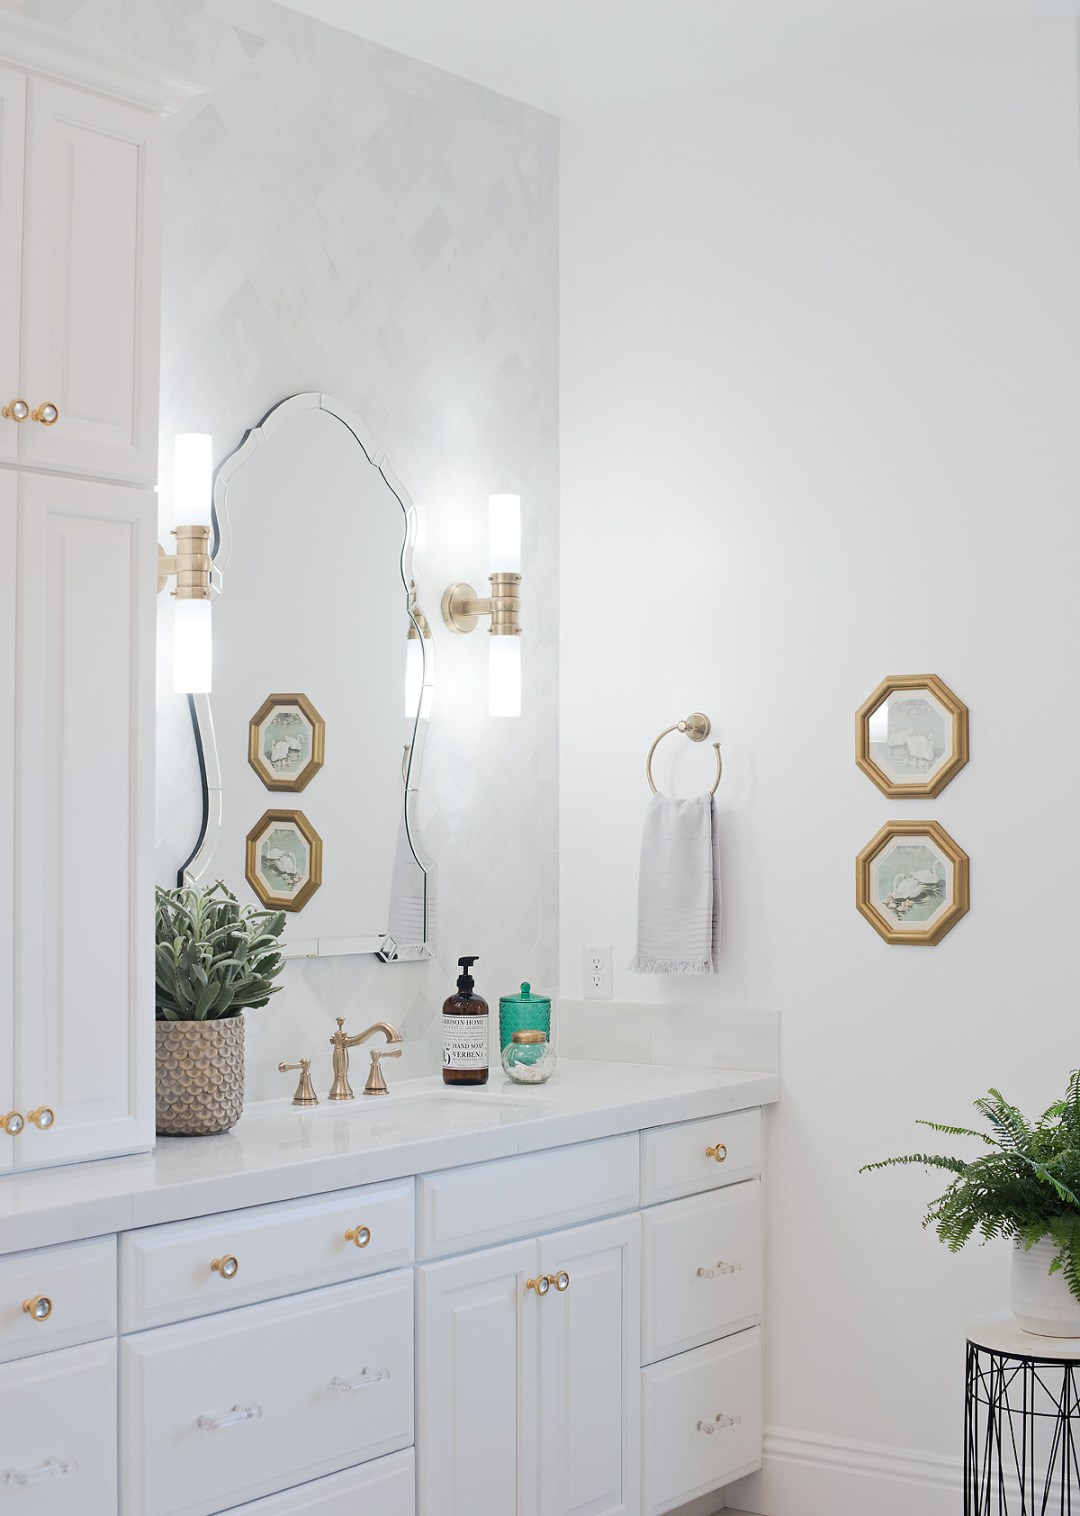 Master Bathroom Reveal: Master Bathroom Reveal & Rejuvenation Giveaway